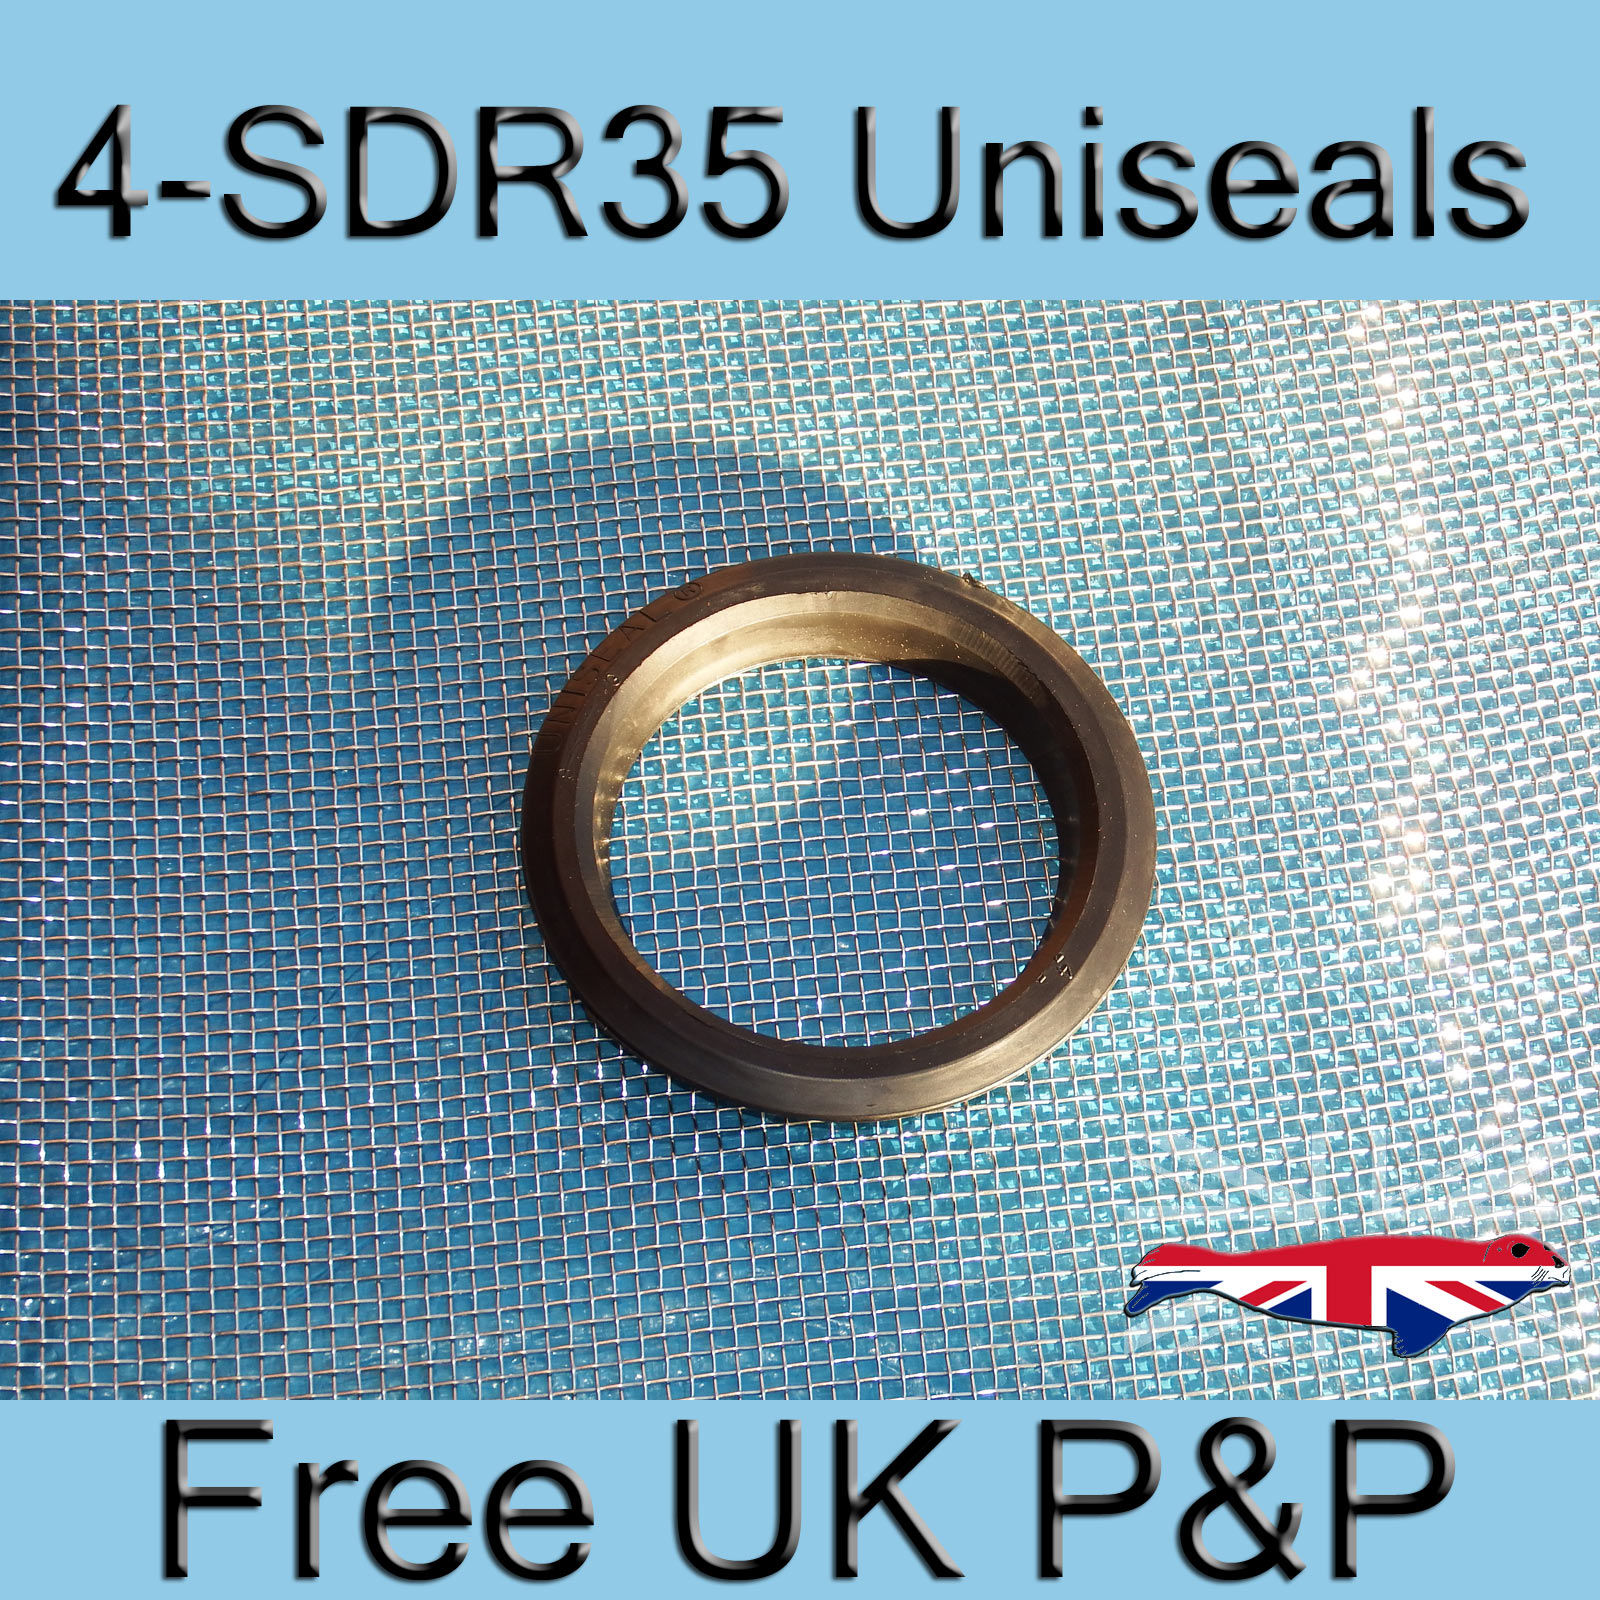 Buy 4 inch-SDR35 Uniseal Image